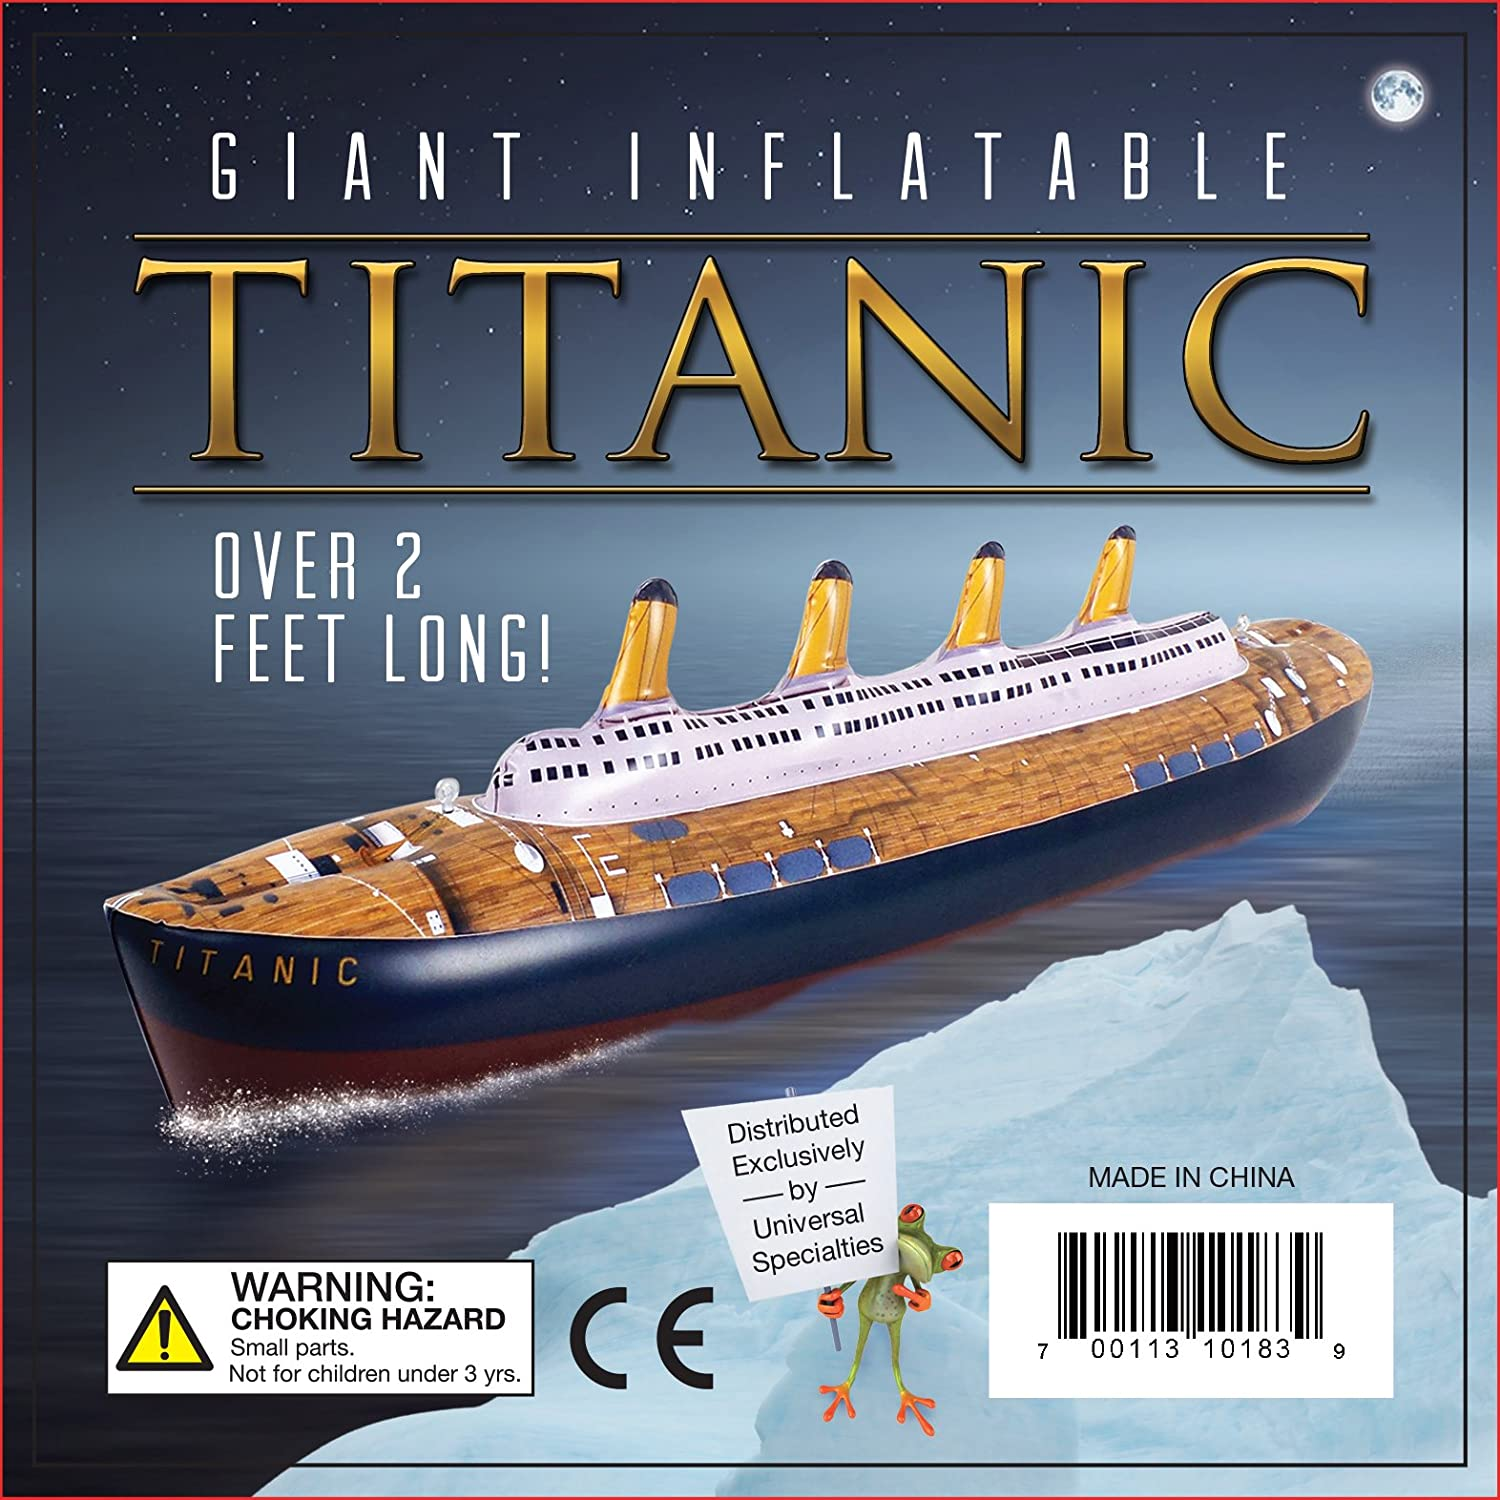 Amazoncom Giant Titanic Inflatable Pool Toy By Universal - Toy cruise ships for sale